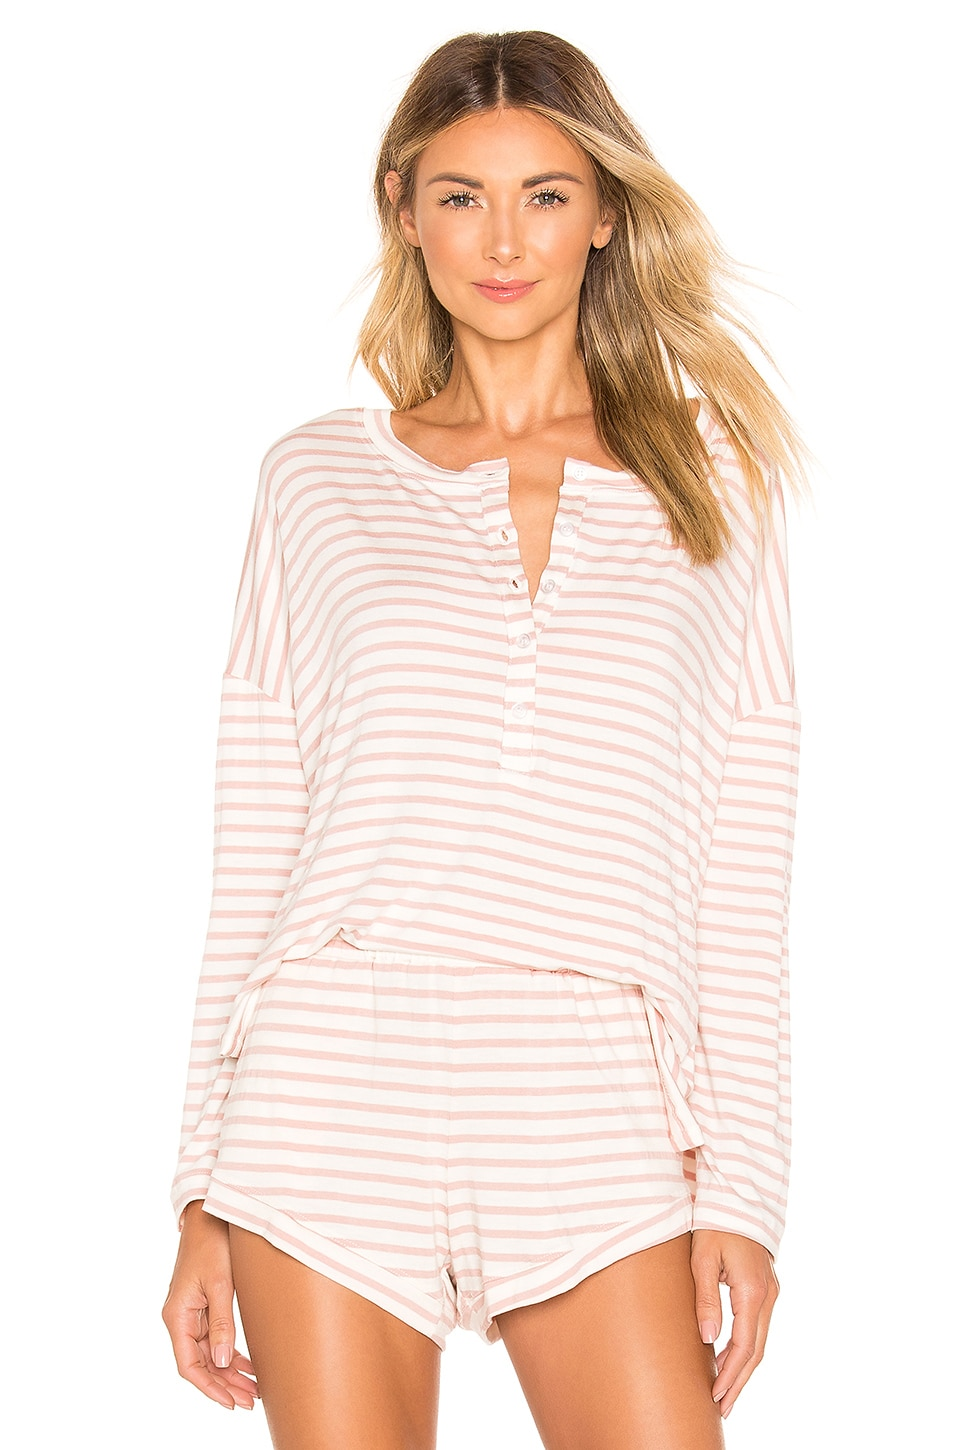 MAISON DU SOIR Courtney Long Sleeve Top in Rose Stripe